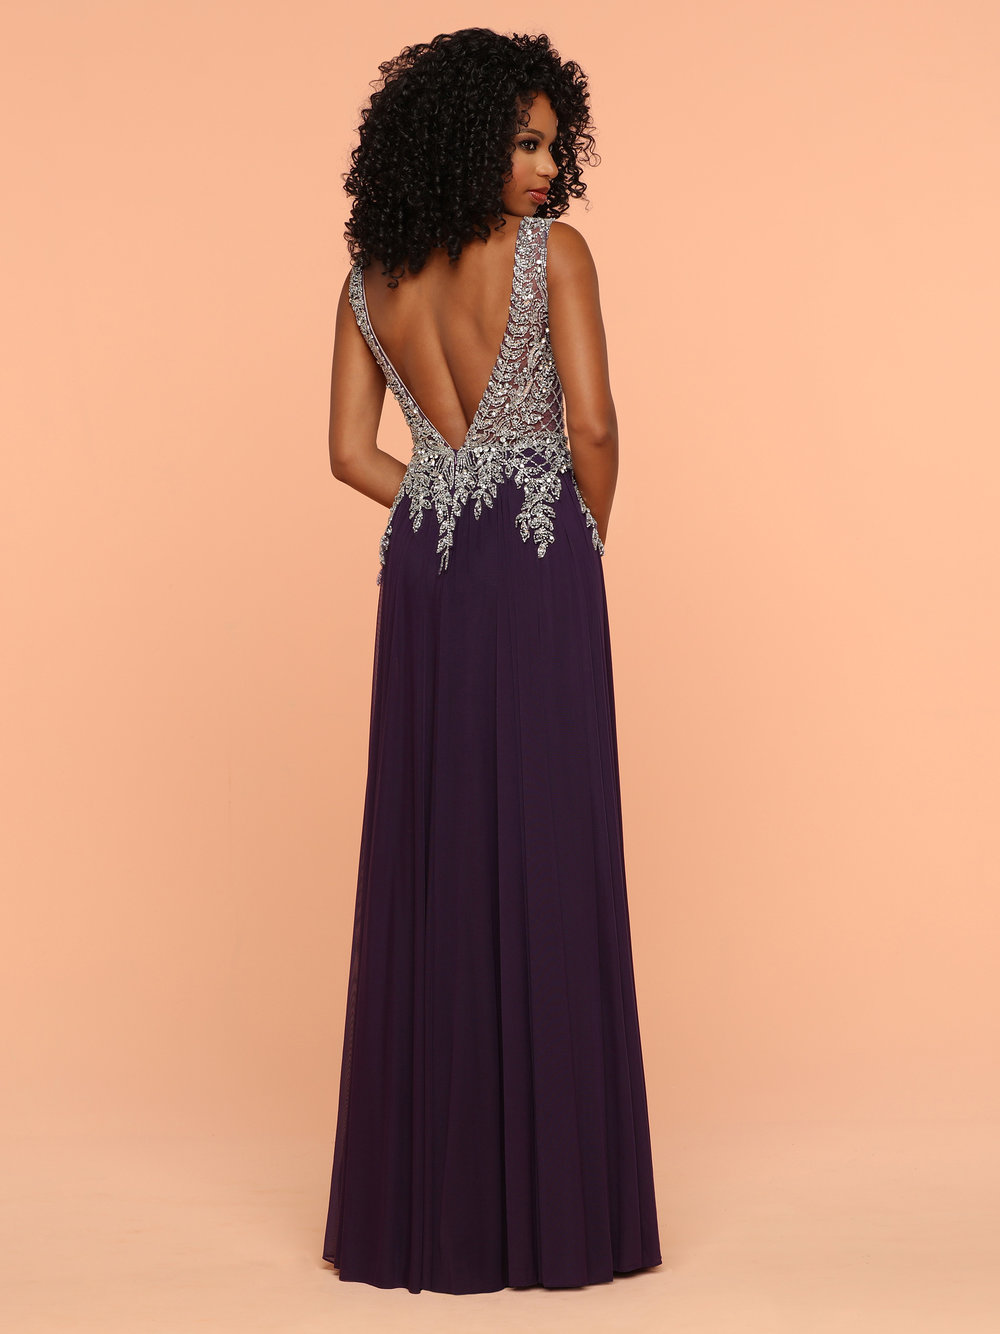 ed8cdefc90 Sparkle Eggplant 71815 Low V Back And Neckline With A Beaded Top ...